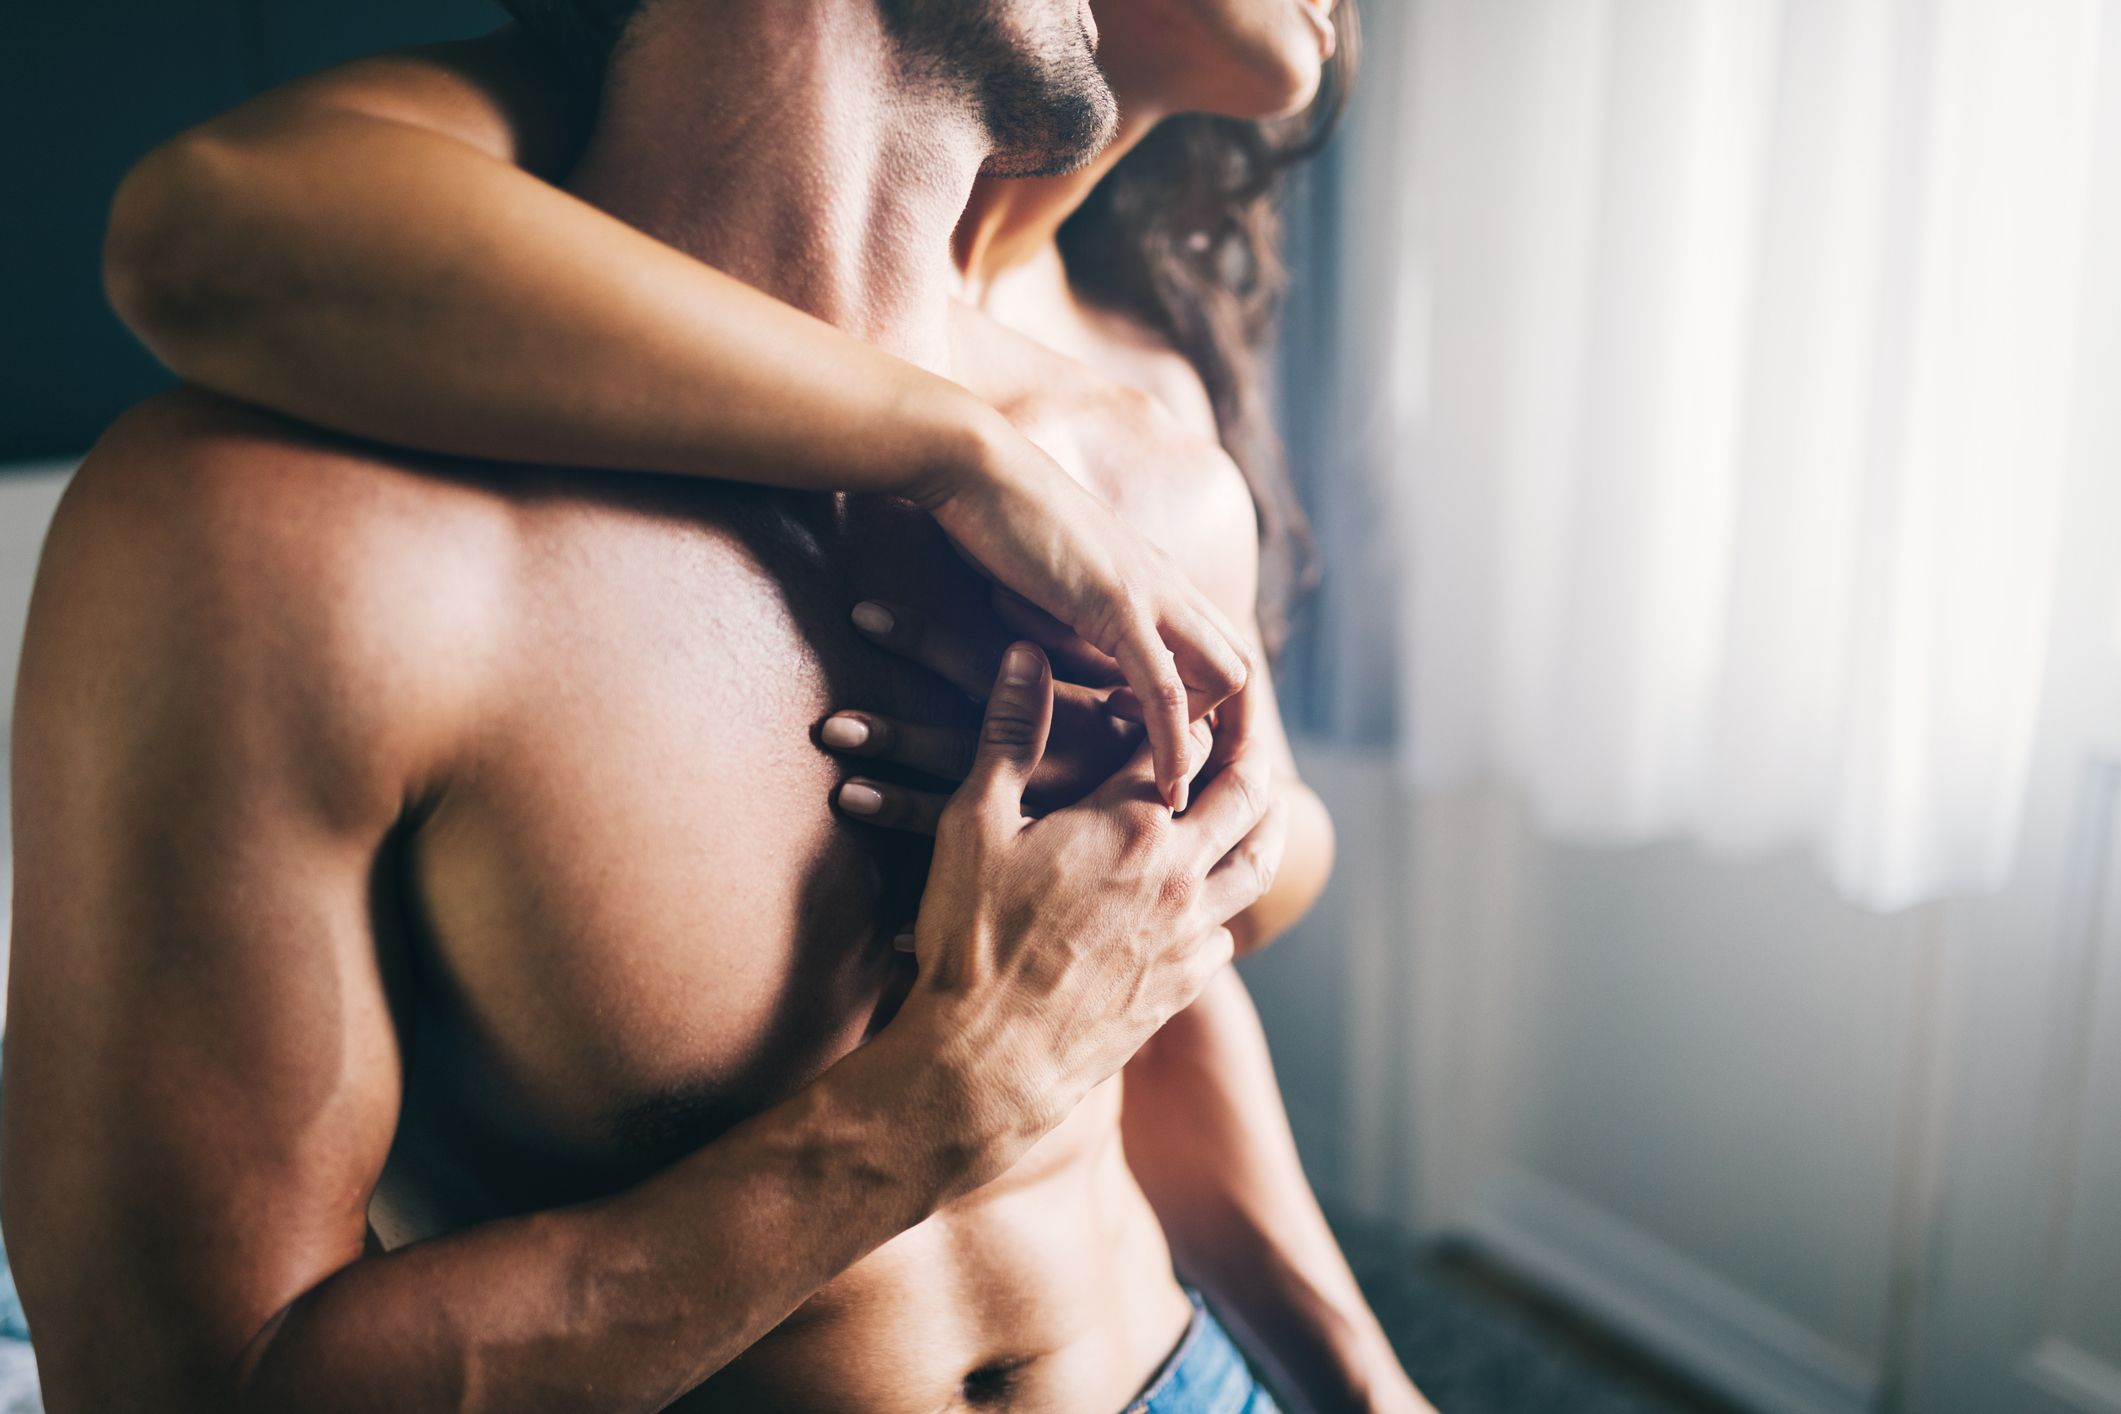 Erotic stories to get your man hot